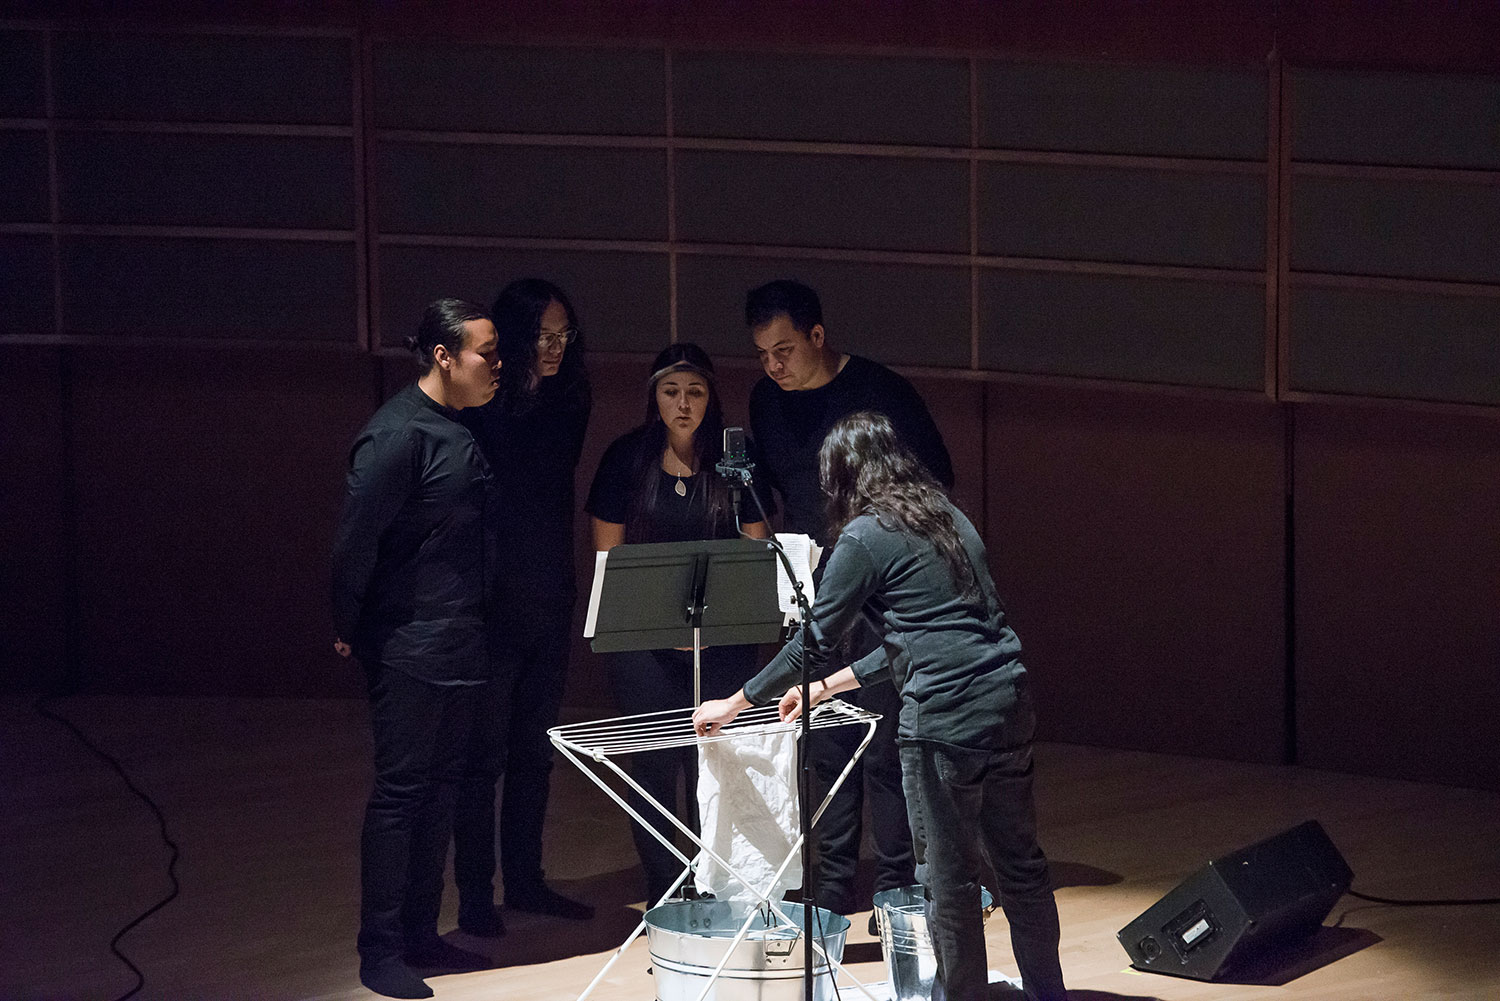 Invited Indigenous, Alberta-based youth musicians, left to right, Curtis Lefthand, seth cardinal, Jaynine Lena McCrae, Marek Tyler, and Cristóbal Martínez (of Postcommodity) perform  in memoriam... Mary Cecil, Victoria Callihoo (née Belcourt), and Eleanor (Helene) Thomas Garneau  at the Francis Winspear Centre for Music in Edmonton, July 18, 2017. Photograph by Kelsey McMillian, Laughing Dog Photography